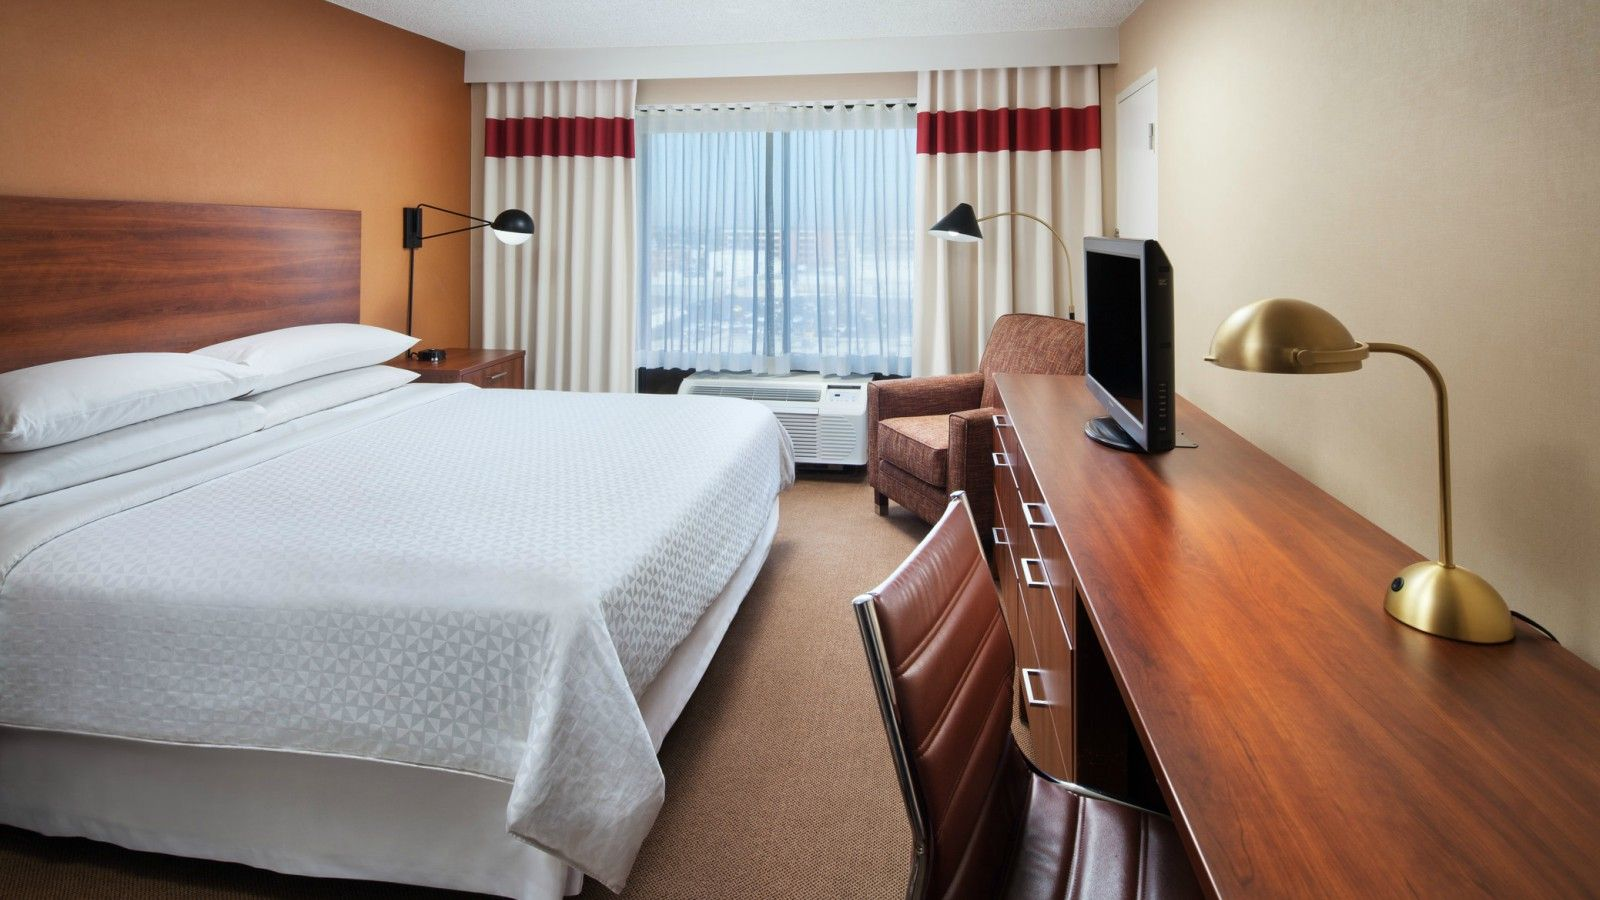 Meeting rooms near LAX - guest rooms